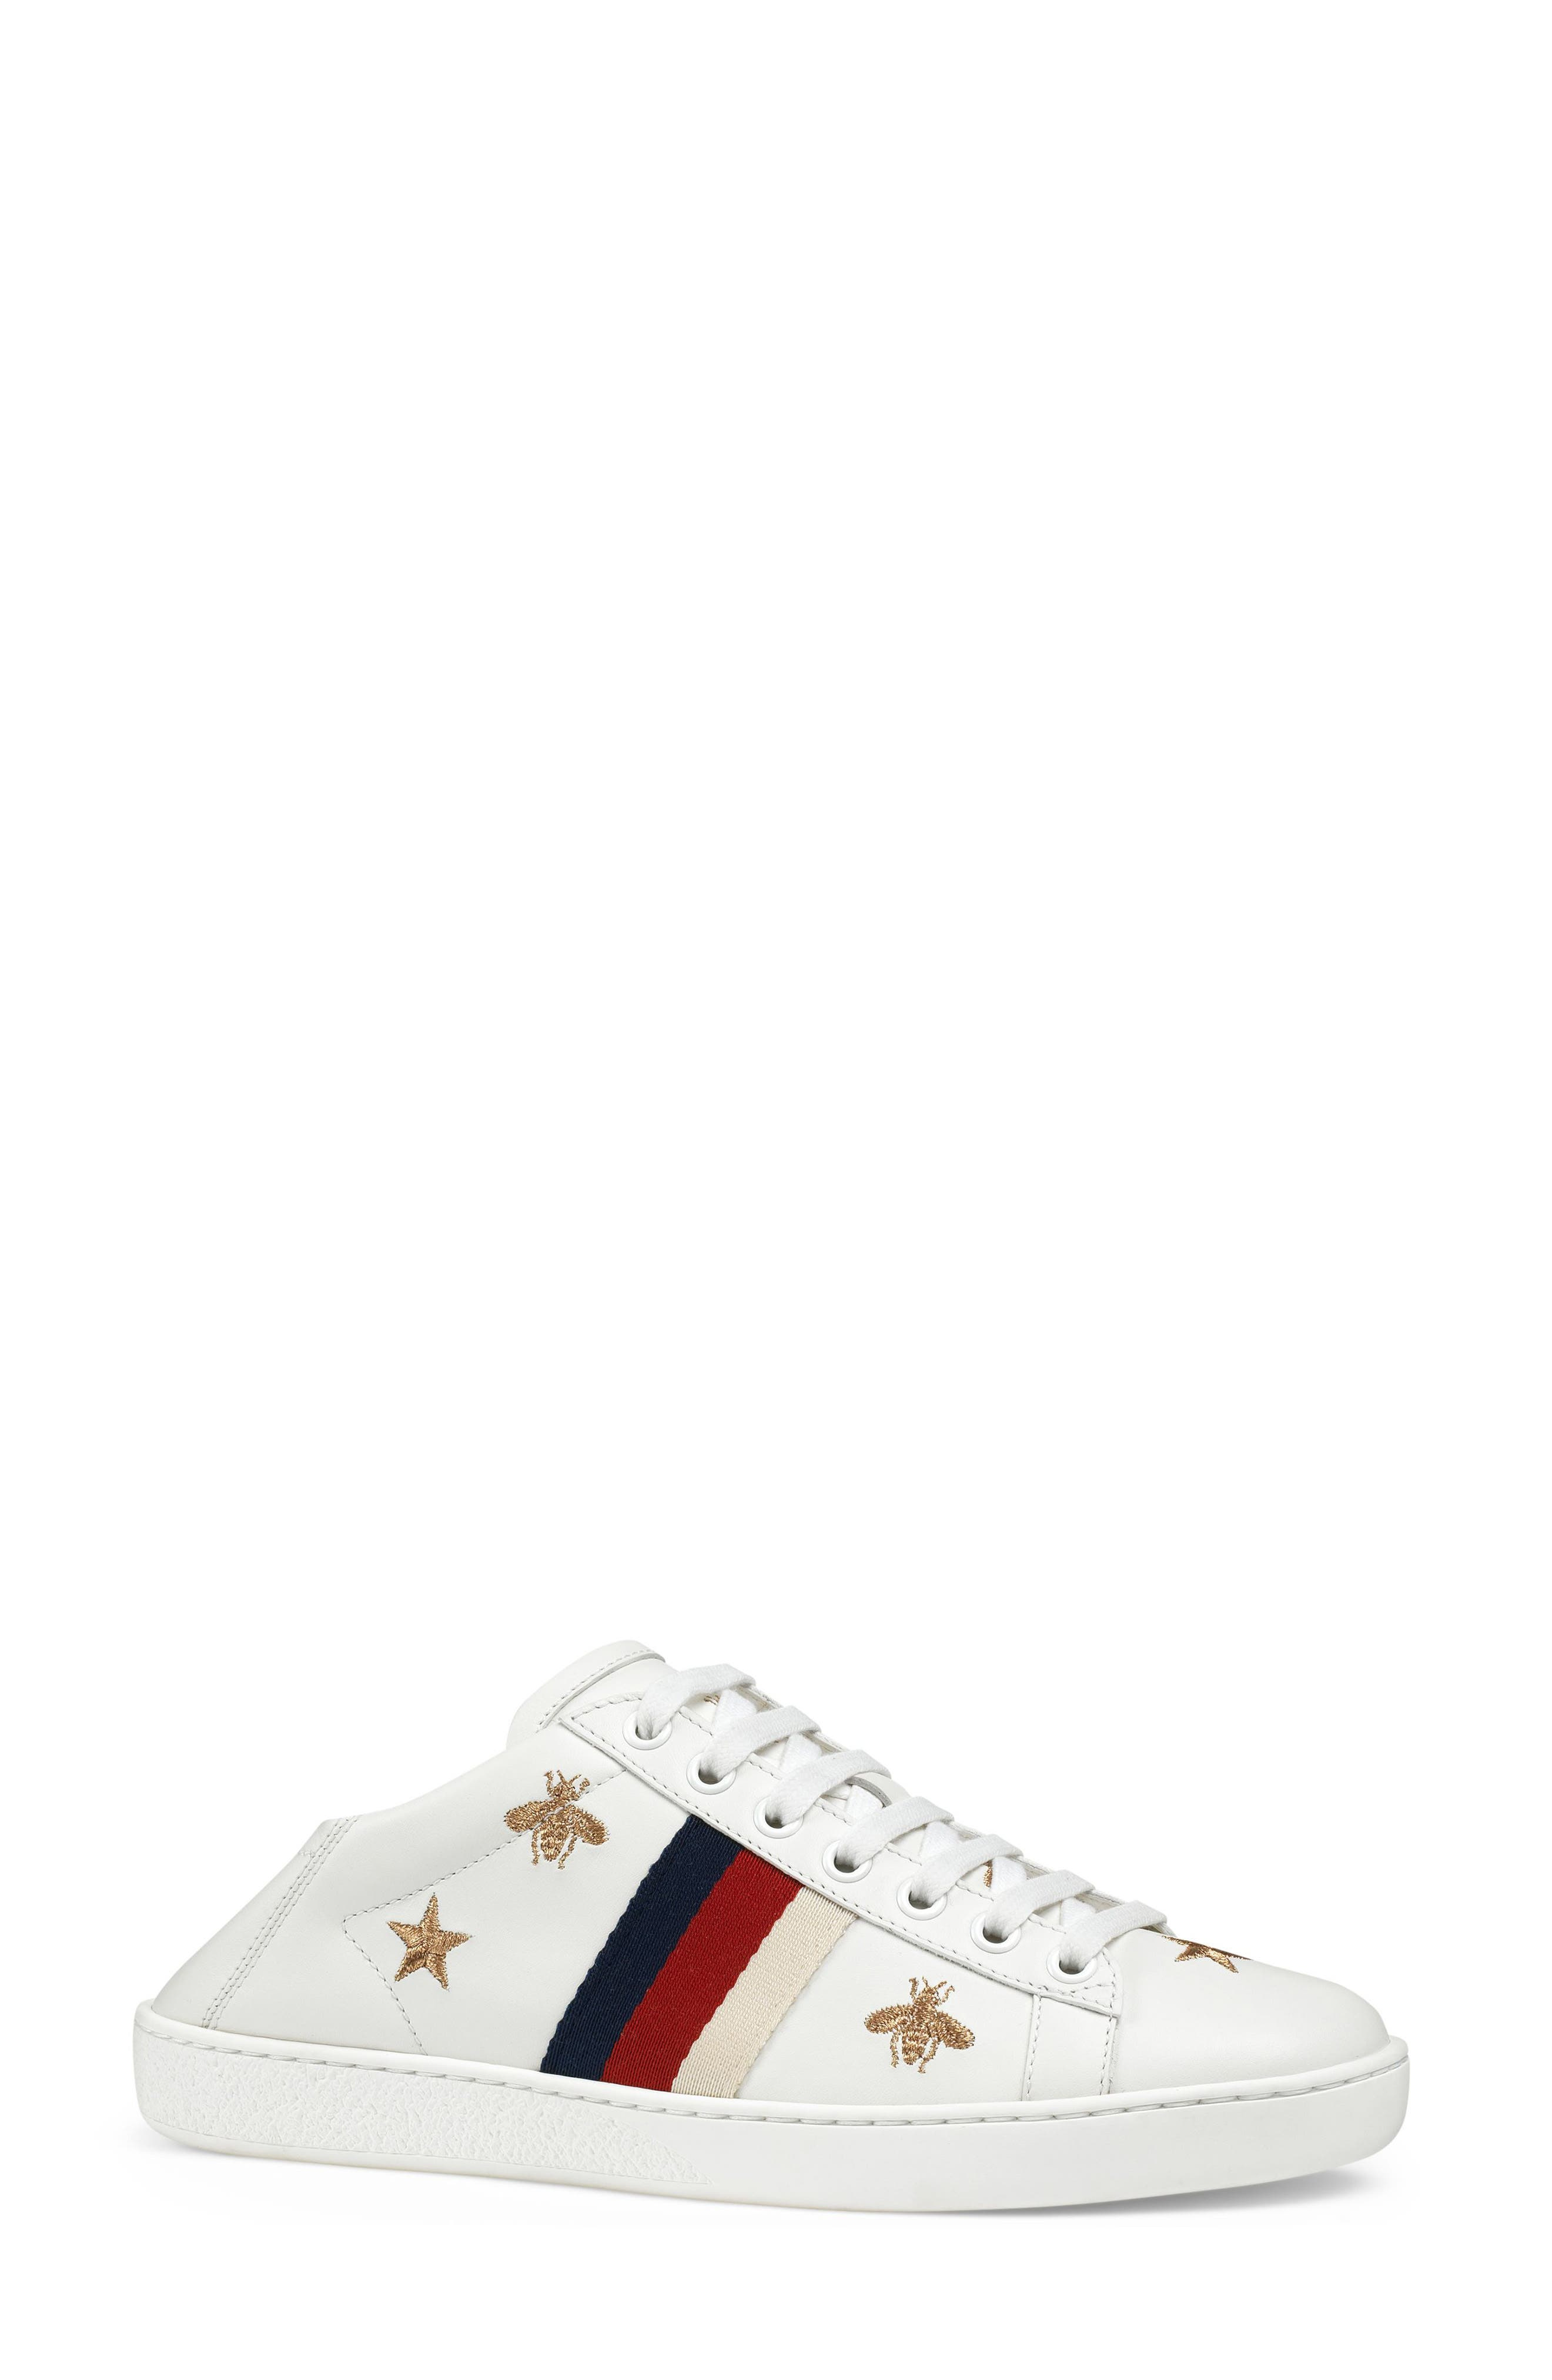 GUCCI, New Ace Convertible Heel Sneaker, Alternate thumbnail 2, color, WHITE/ BEE PRINT